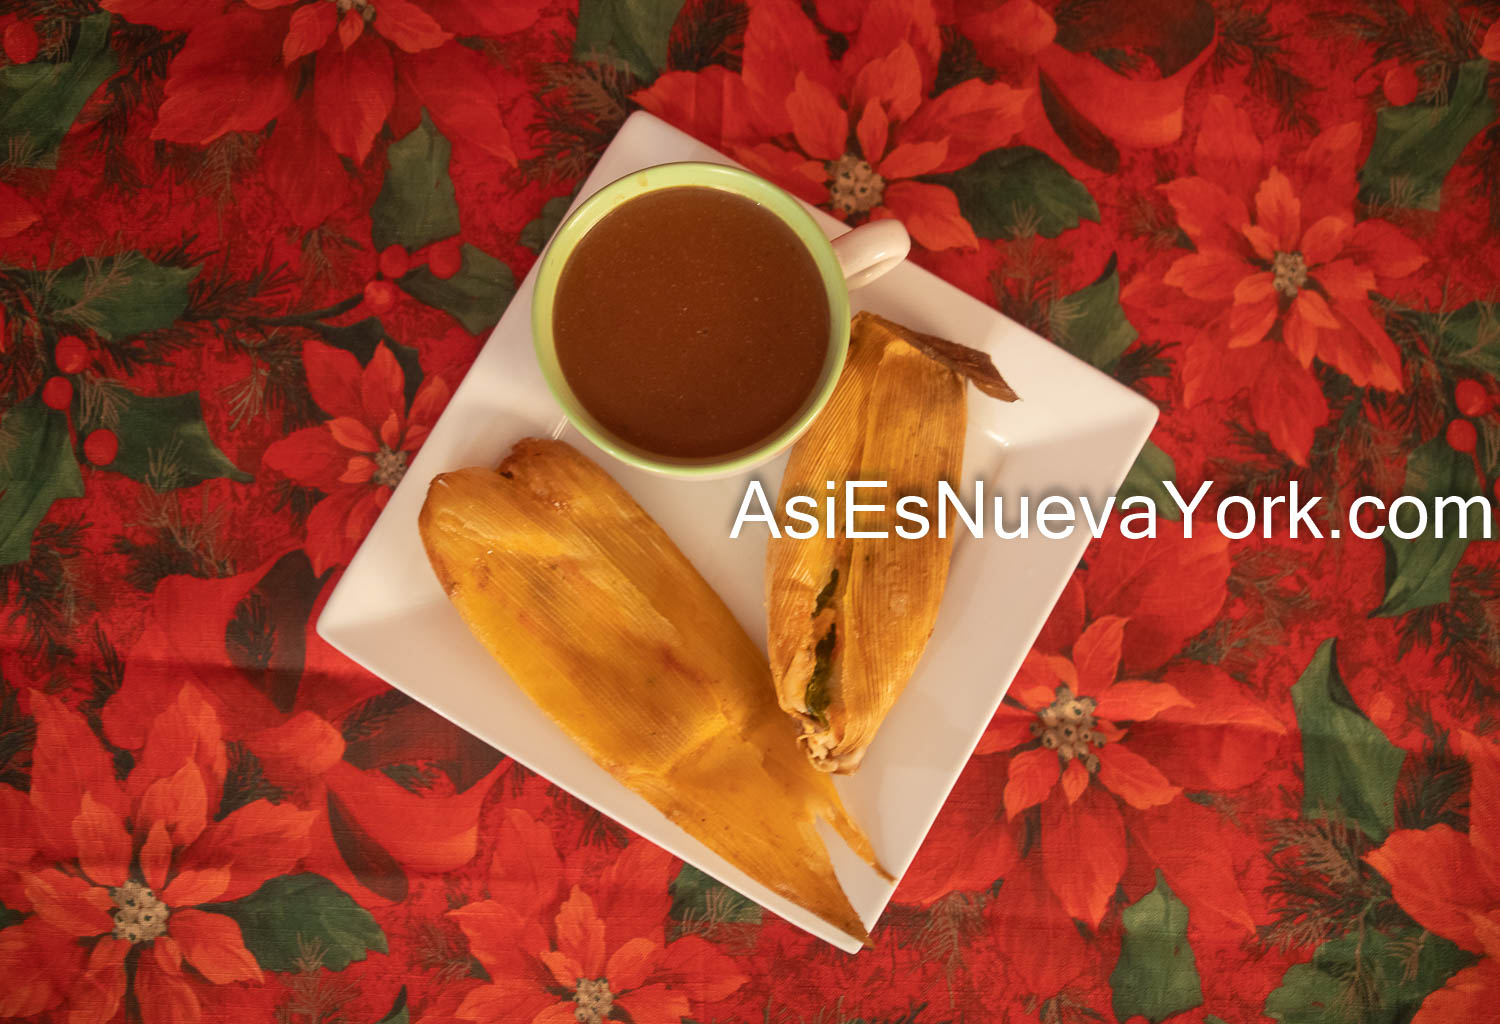 Wednesday, December 9, 2020. Brooklyn, New York City – Delicious tamales and champurrado. The background is a Cuetlaxóchitls tablecloth. The Cuetlaxóchitl is a Mexican plant. The Cuetlaxóchitl is also known as Flor de Nochebuena, poinsettia flower, etc. Photo by Javier Soriano/www.JavierSoriano.com